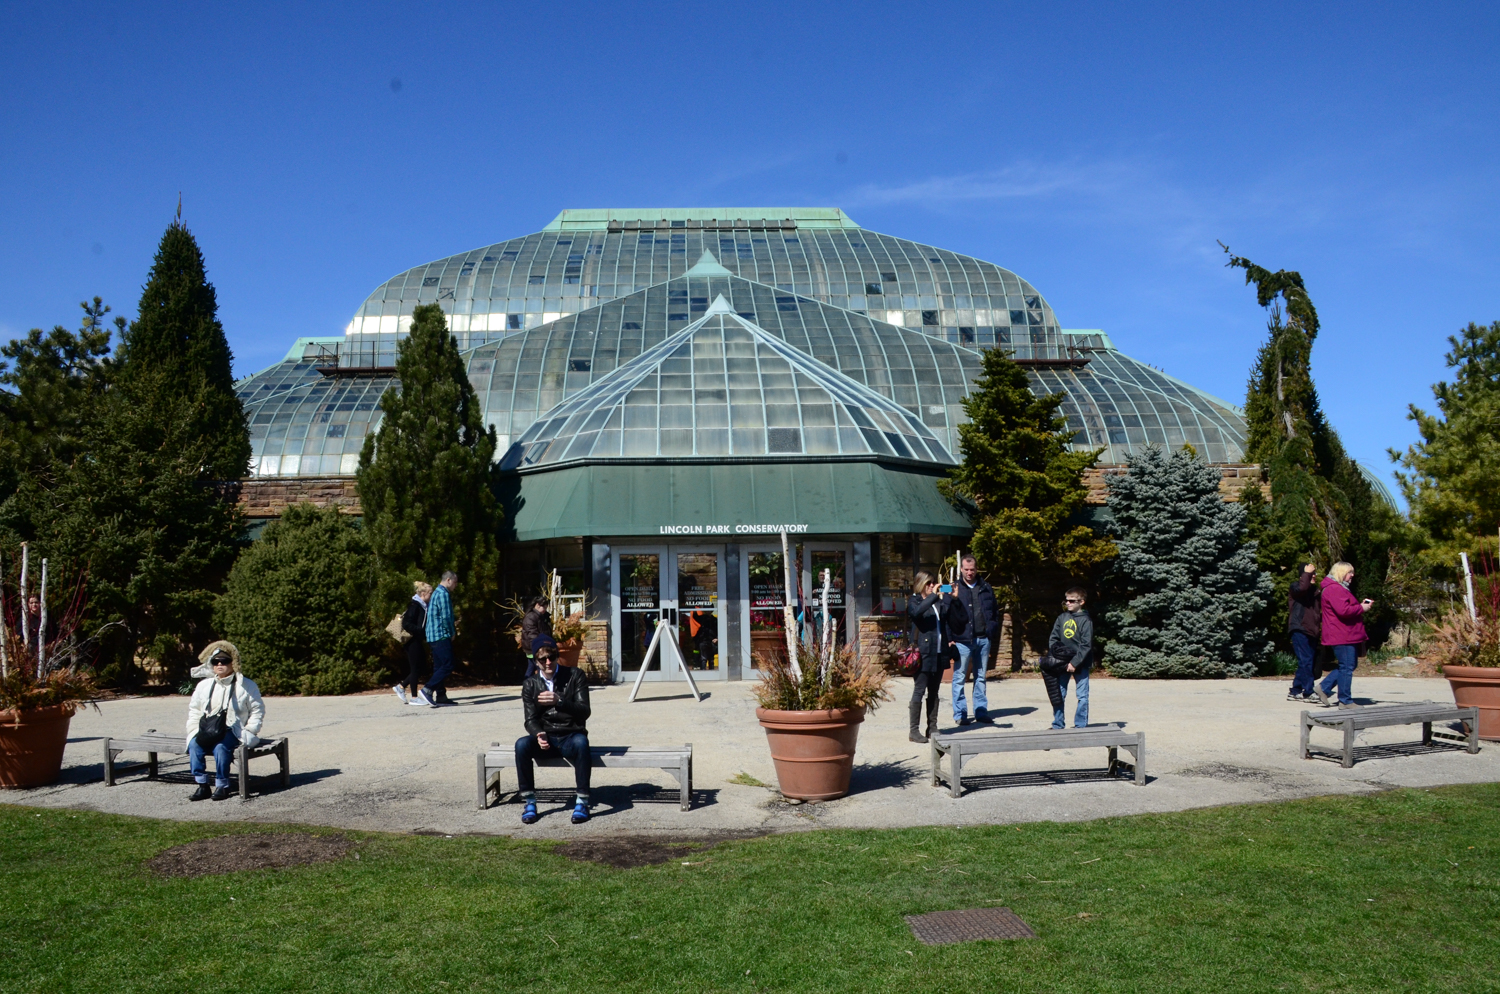 Lincoln Park Conservatory, Chicago